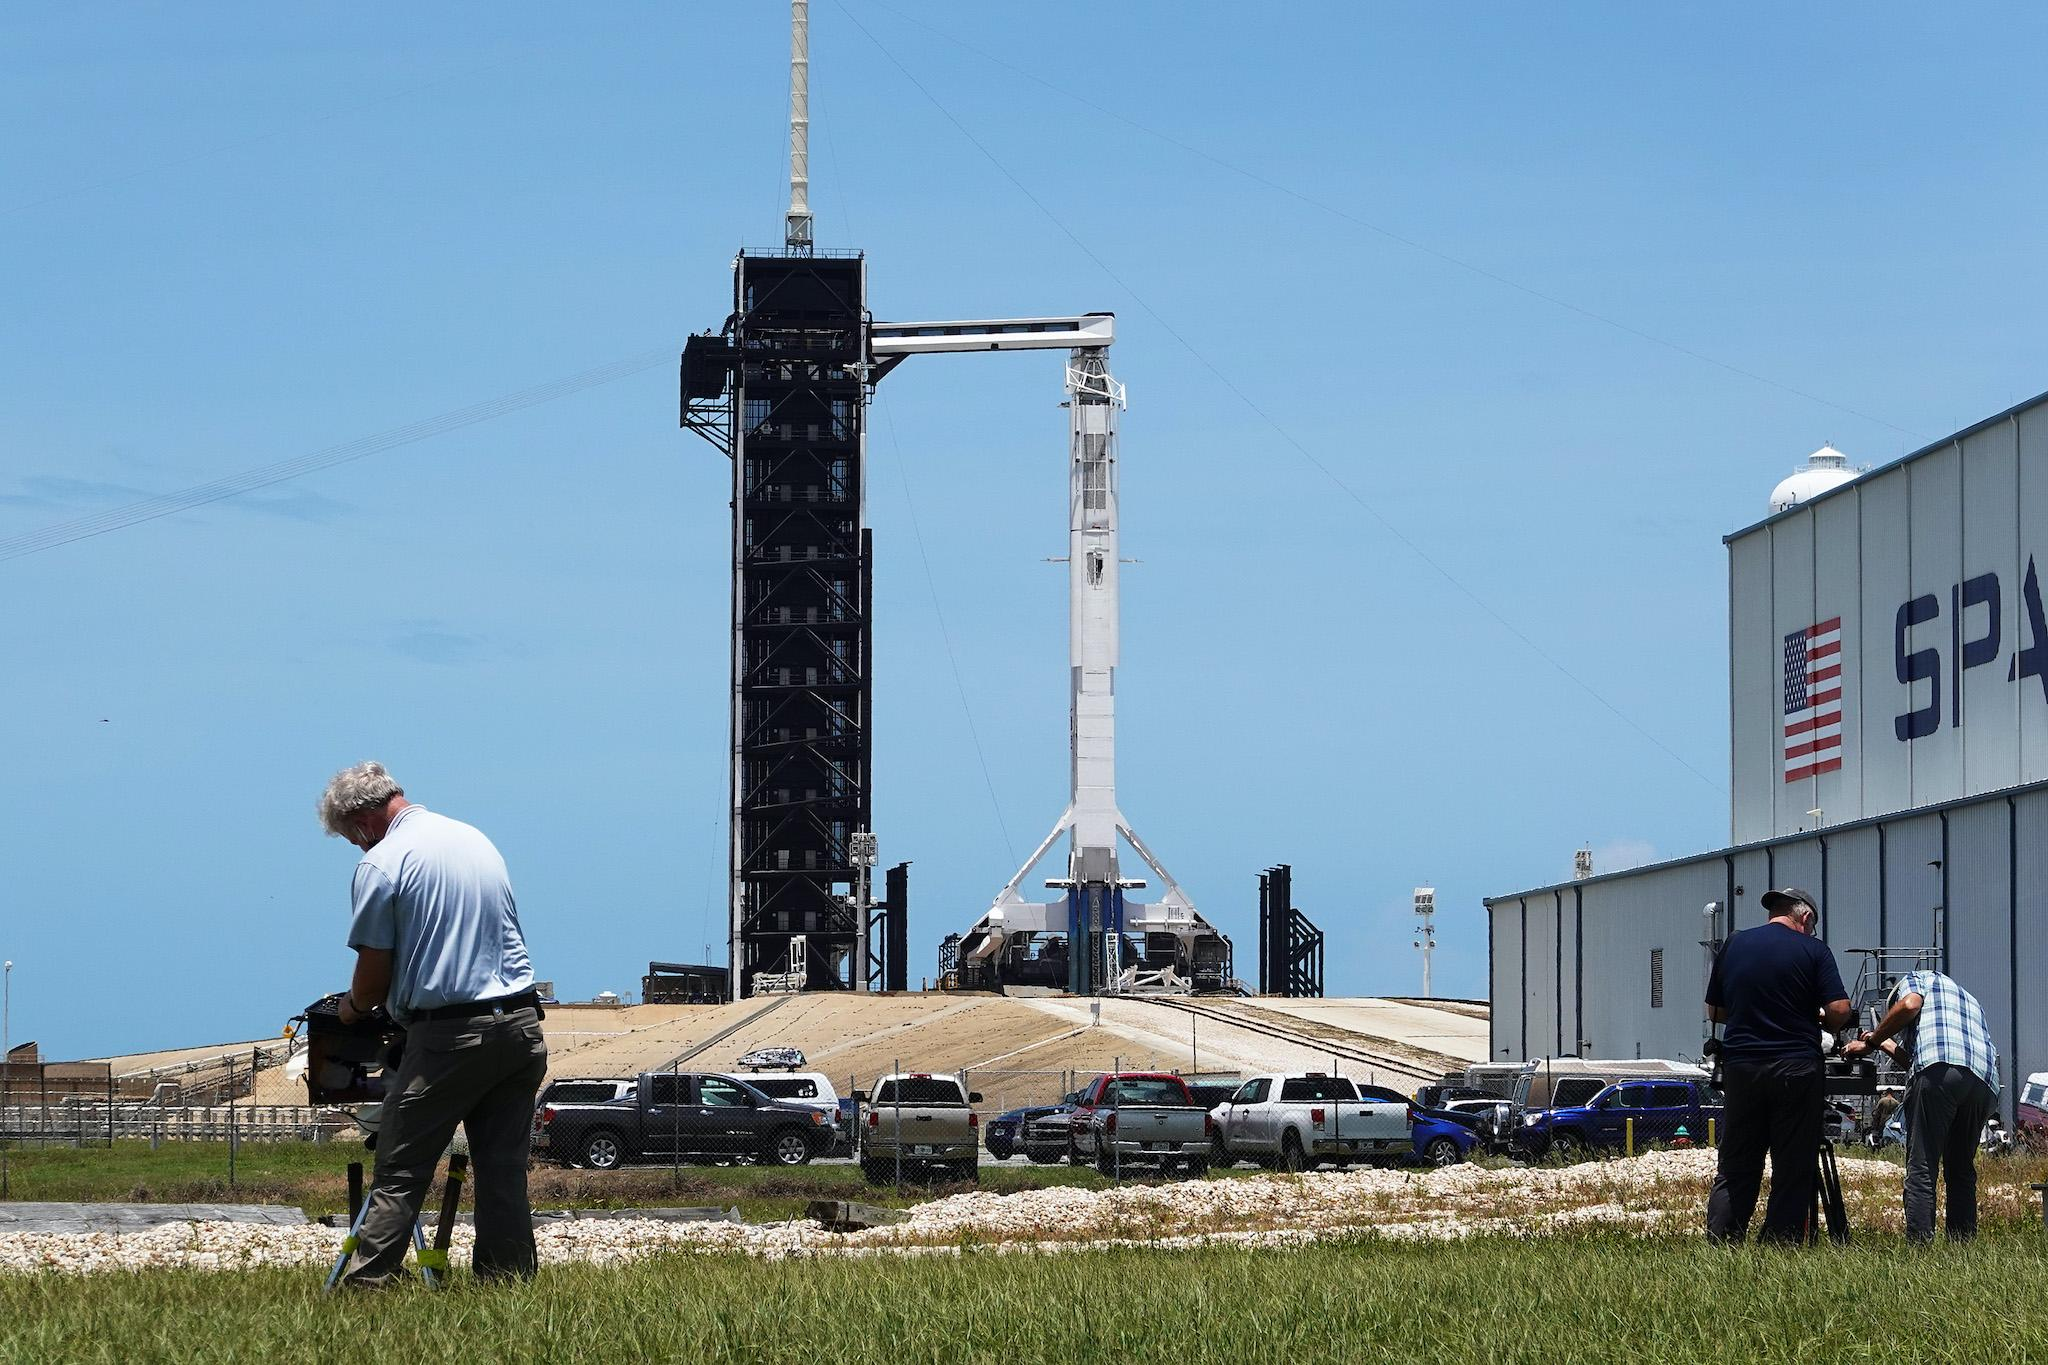 SpaceX launch - live: Nasa to attempt mission today as rocket liftoff threatened by weather again